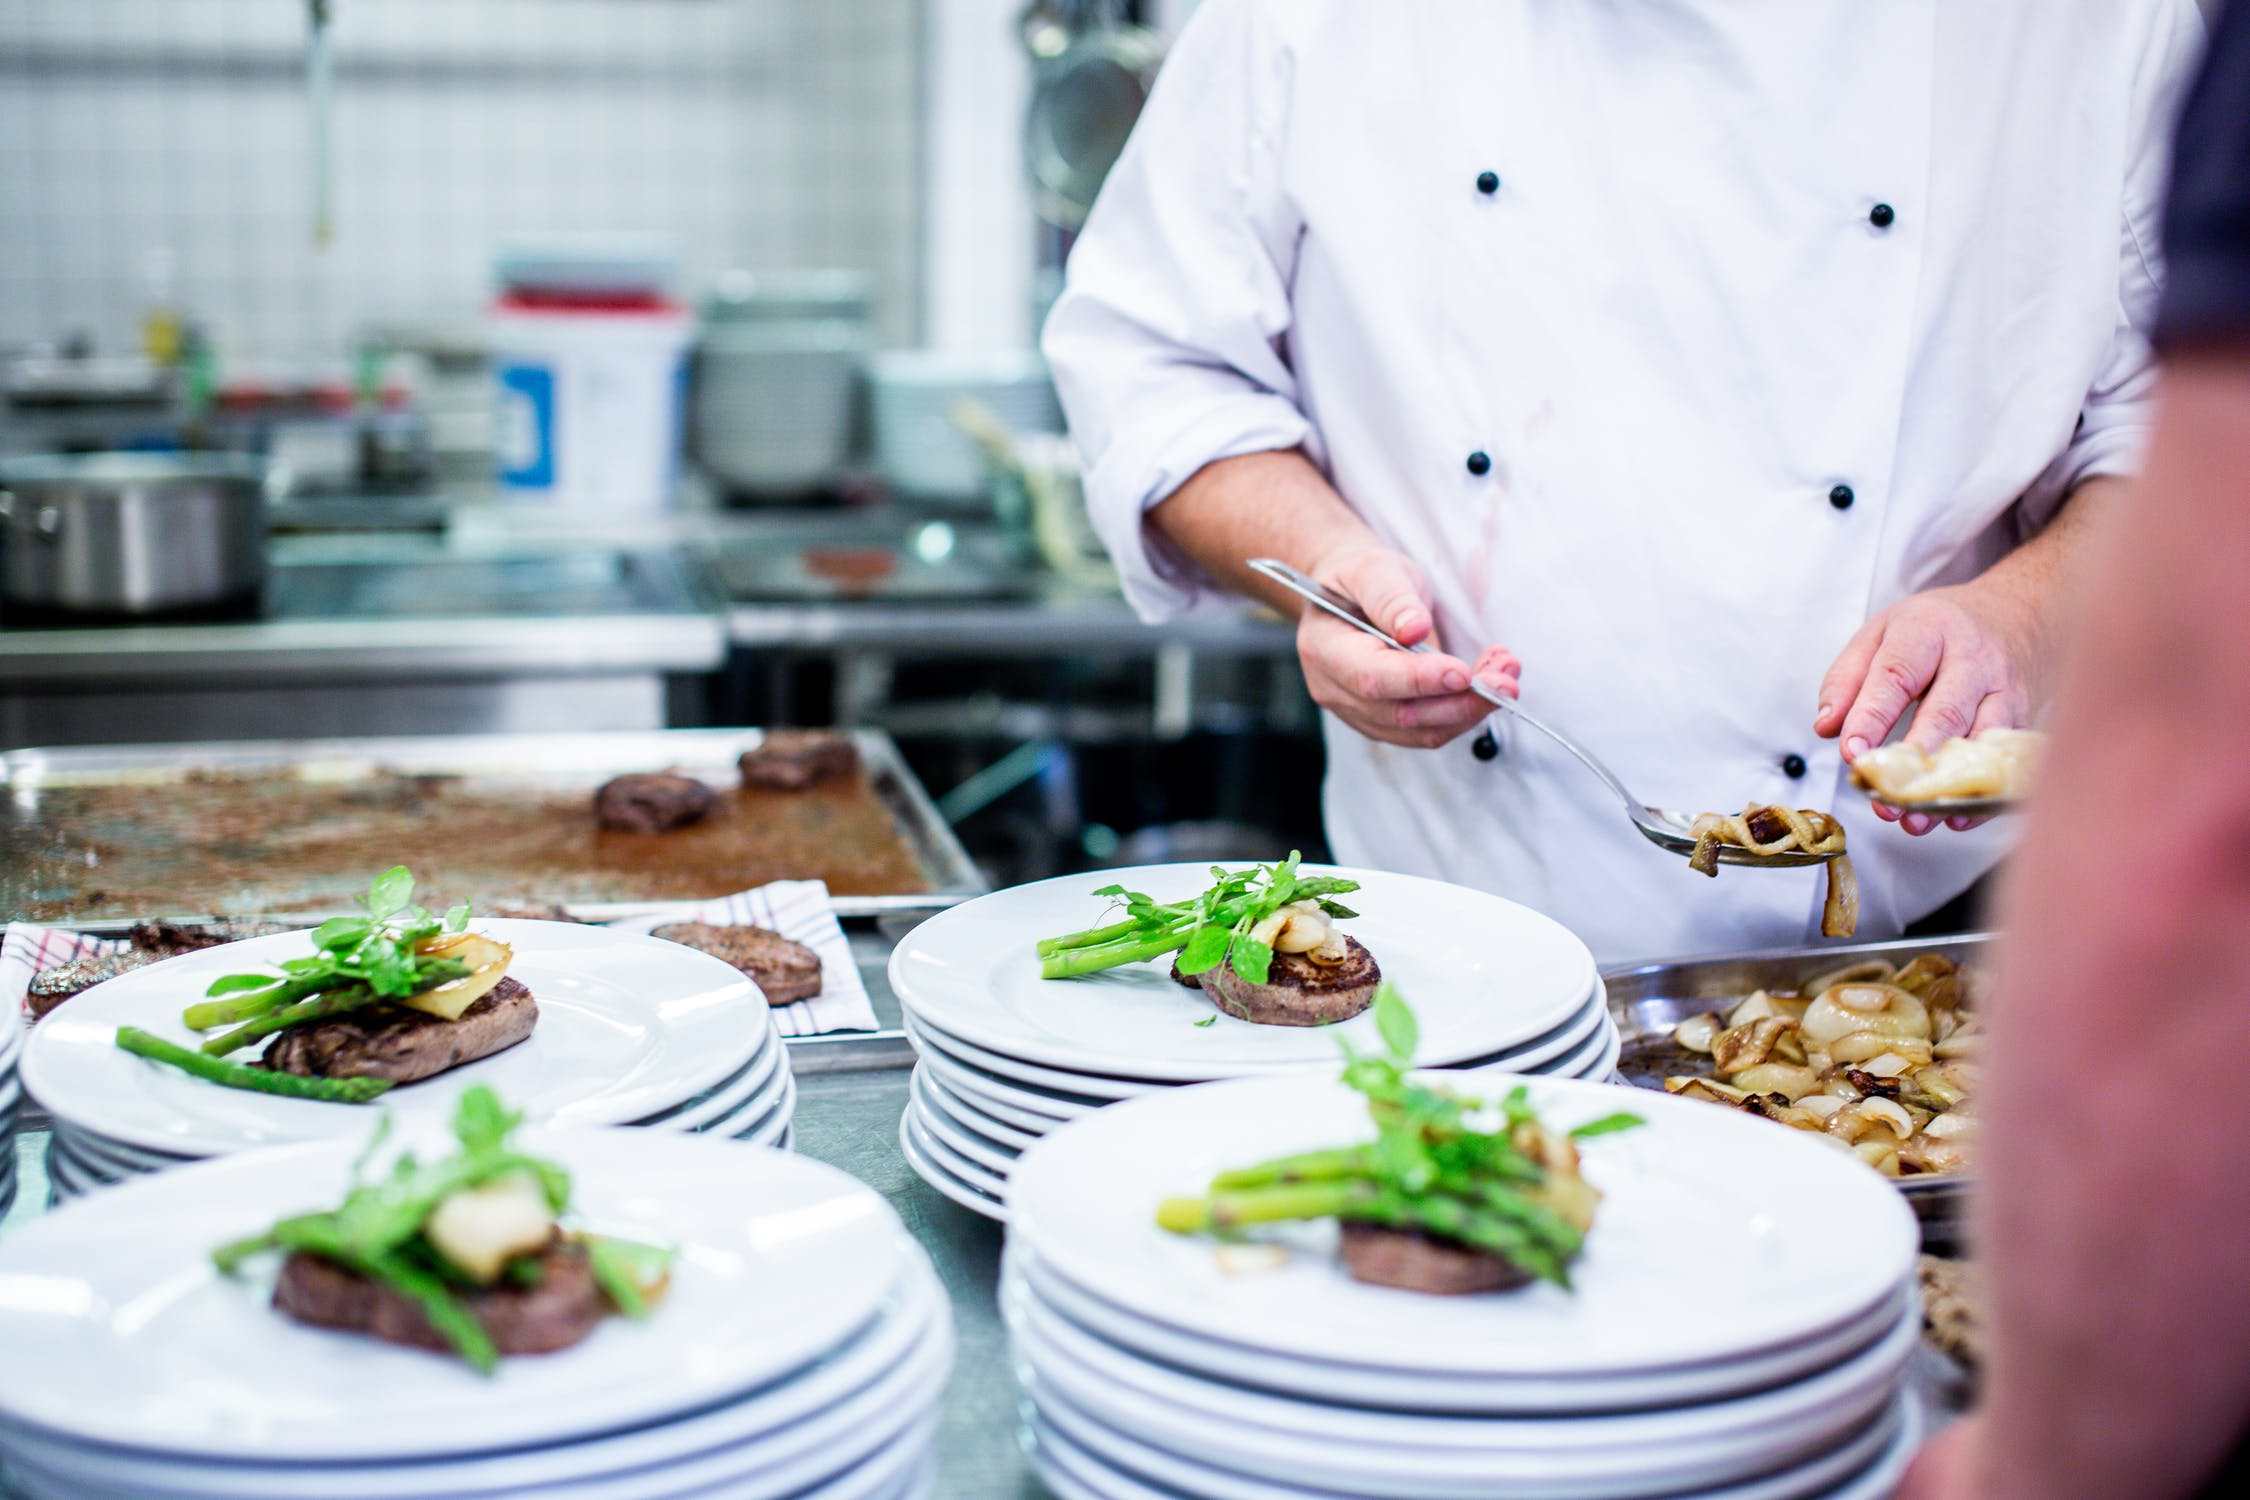 The chef and his assistants made the best gourmet food | Source: Unsplash